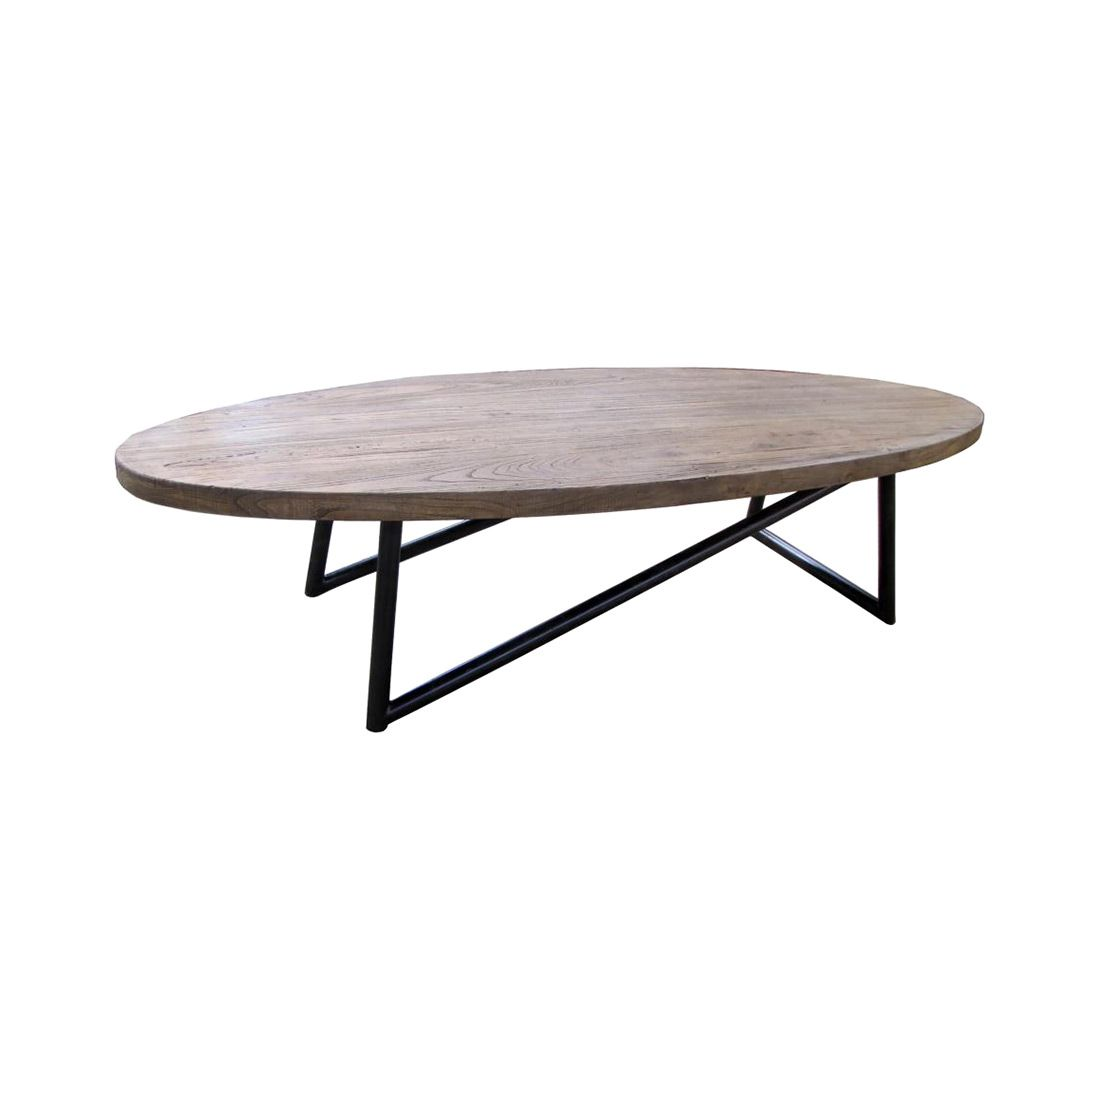 Maldives Coffee Table Coffee Table Mid Century Modern Coffee Table Living Room Accent Tables [ 1100 x 1100 Pixel ]